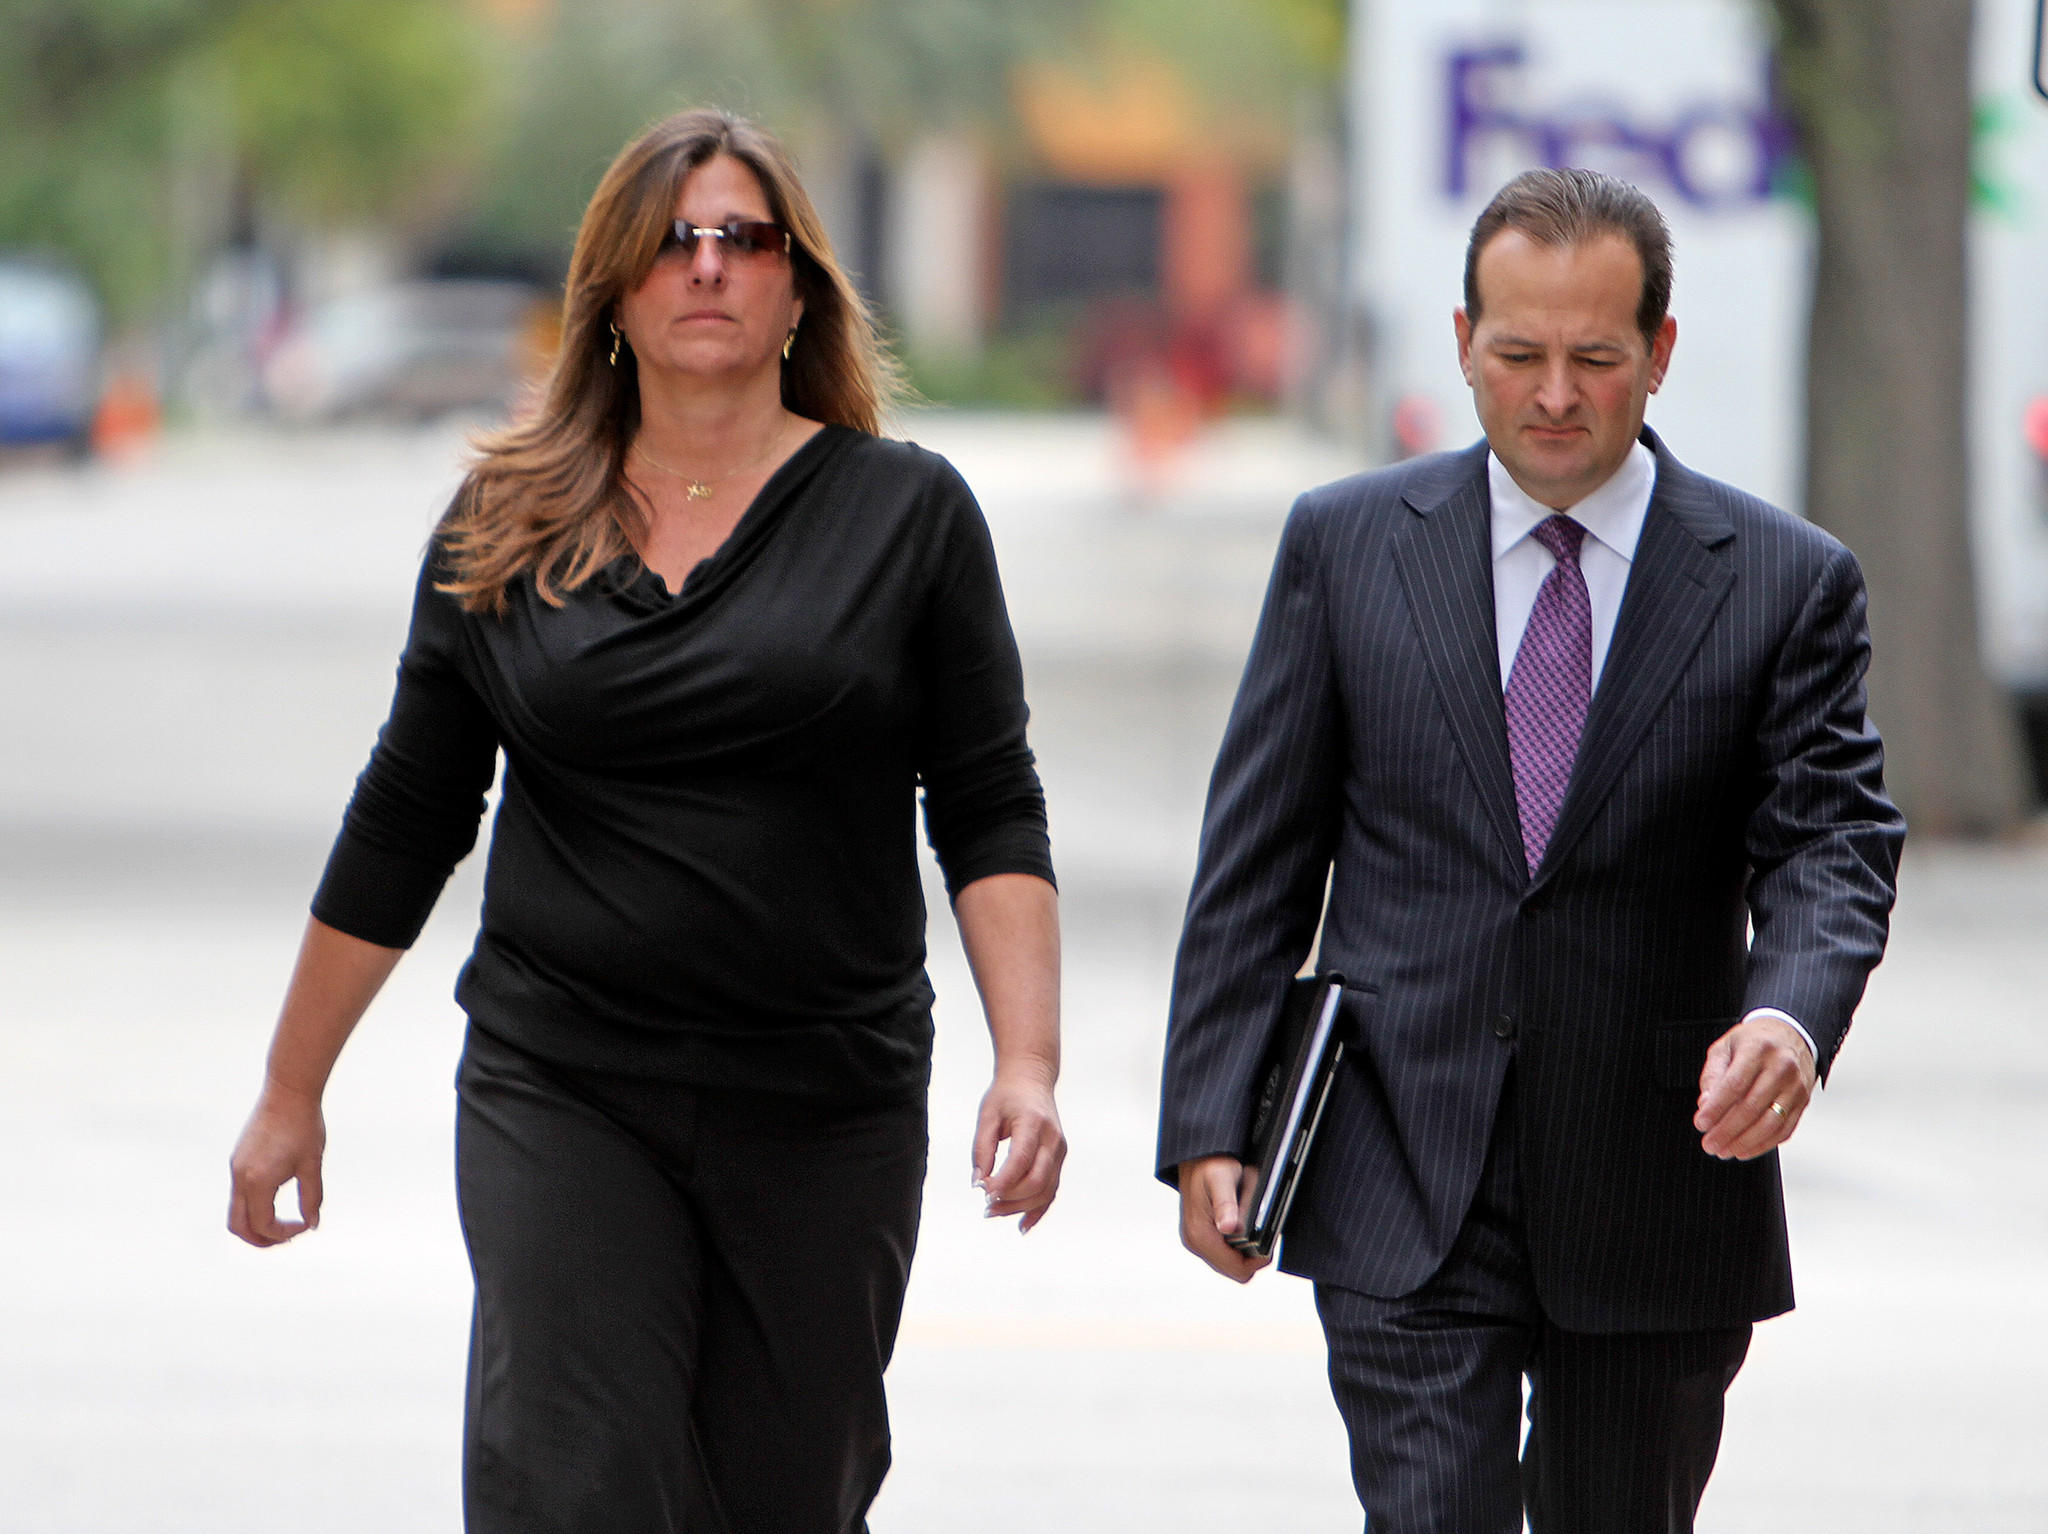 Scott Rothstein's former CFO Irene Stay Shannon pleaded guilty to conspiracy to commit money laundering and bank fraud. This file photo shows her leaving federal court in Fort Lauderdale last month, with her attorney Brian Tannebaum. Susan Stocker, Sun Sentinel